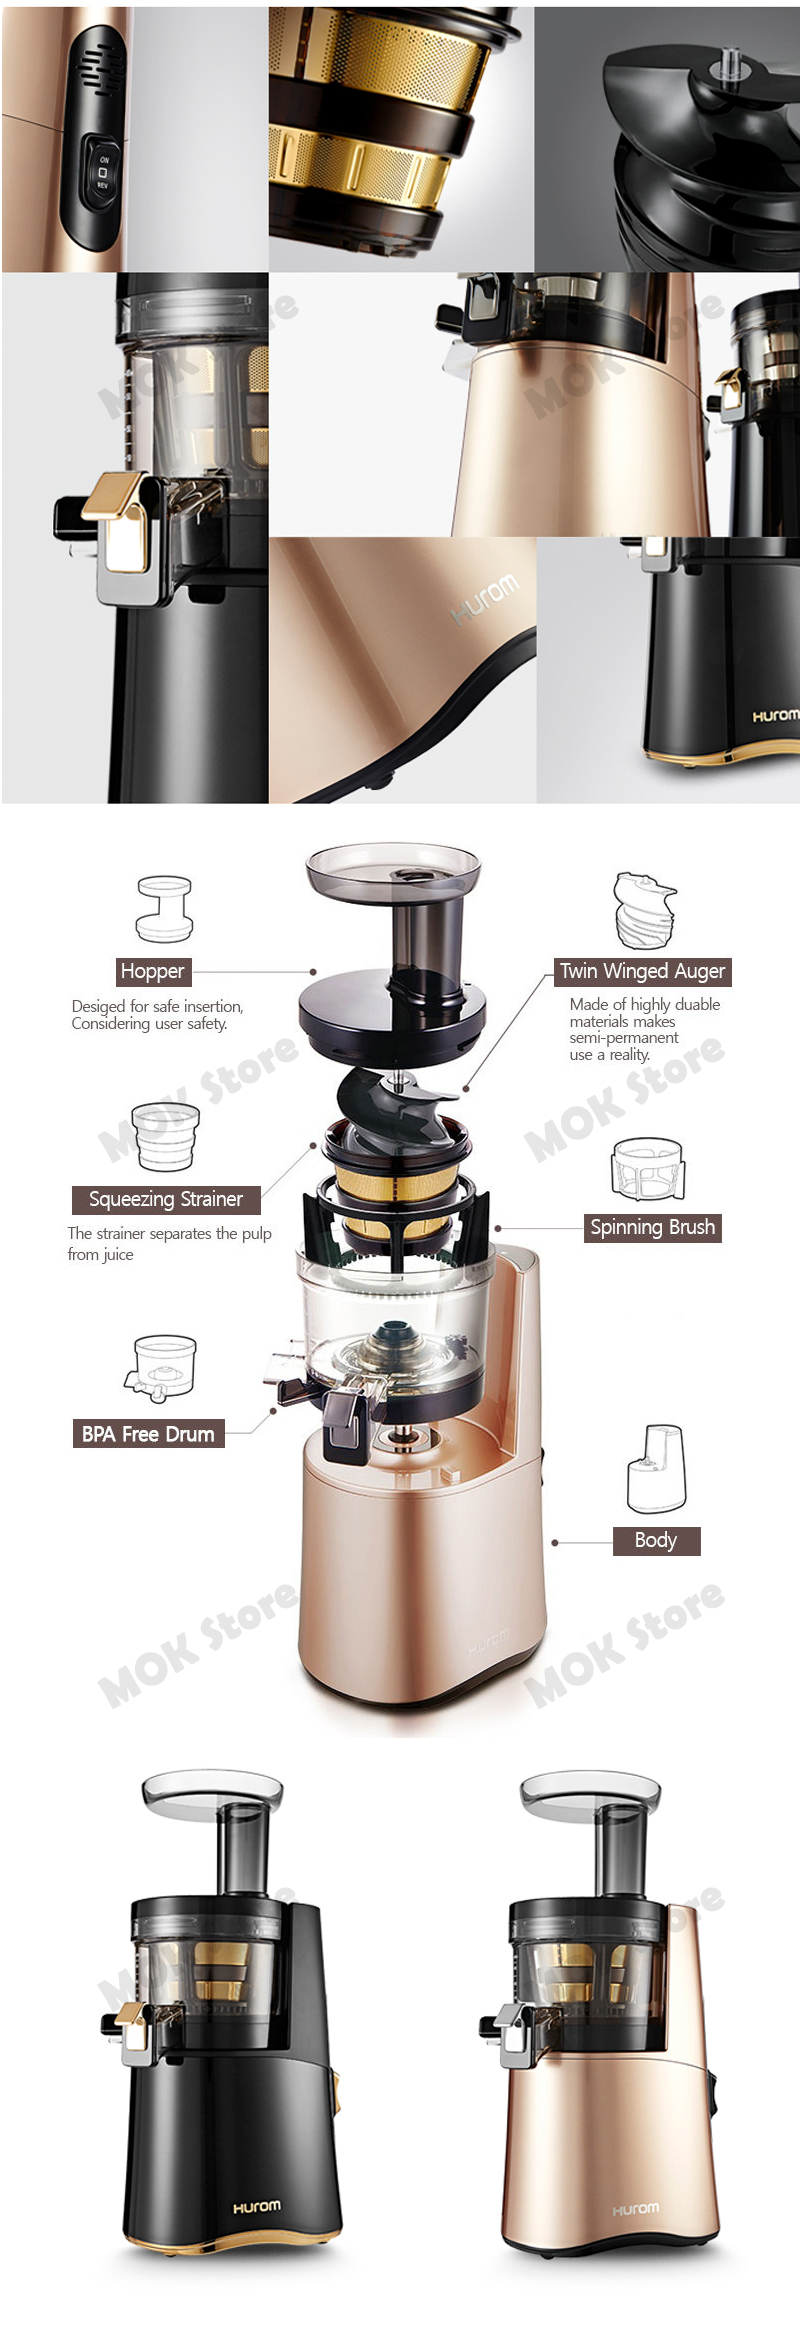 Hurom Premium Slow Juicer Review : HUROM ALPHA H-AA LBF17 Premium Slow Cold Press Juicer Squeeze Extractor RoseGold eBay